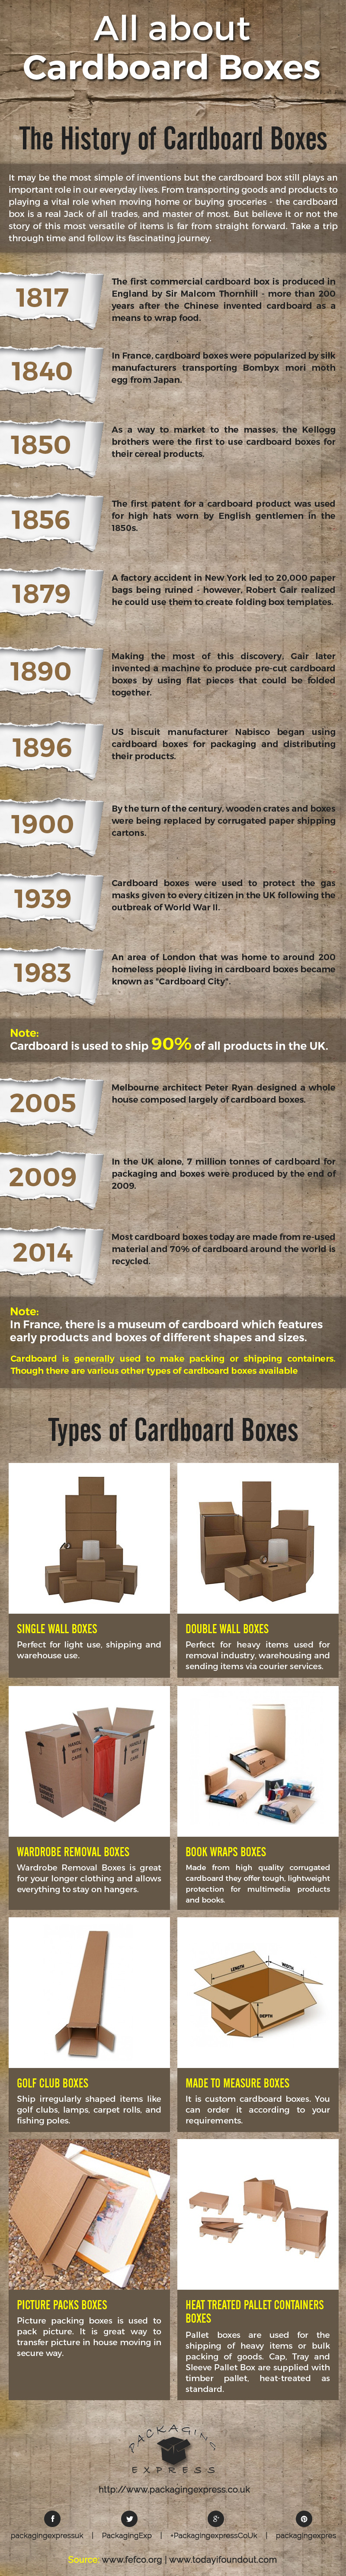 all about cardboard boxes